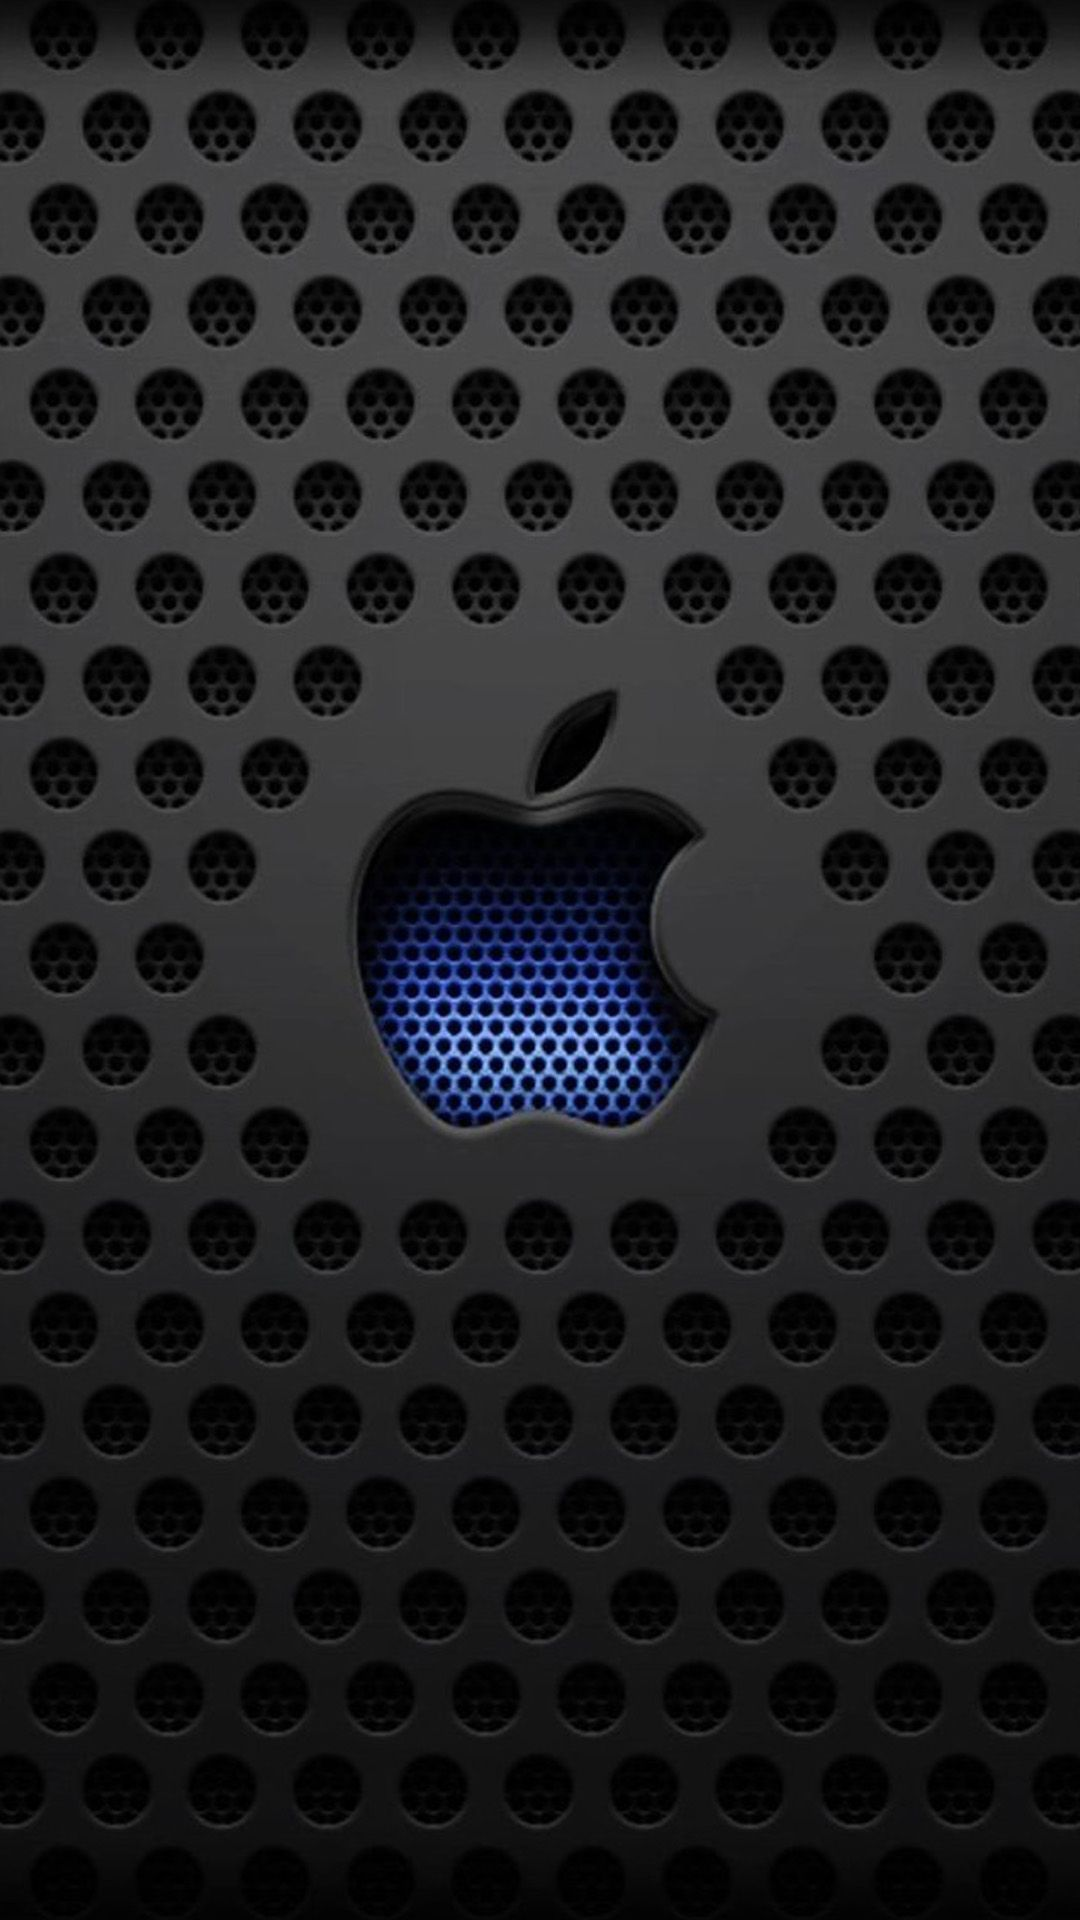 Image Result For Iphone 6 Plus Wallpapers Wallpaper Hd Iphone Wallpaper Iphone Wallpaper Apel